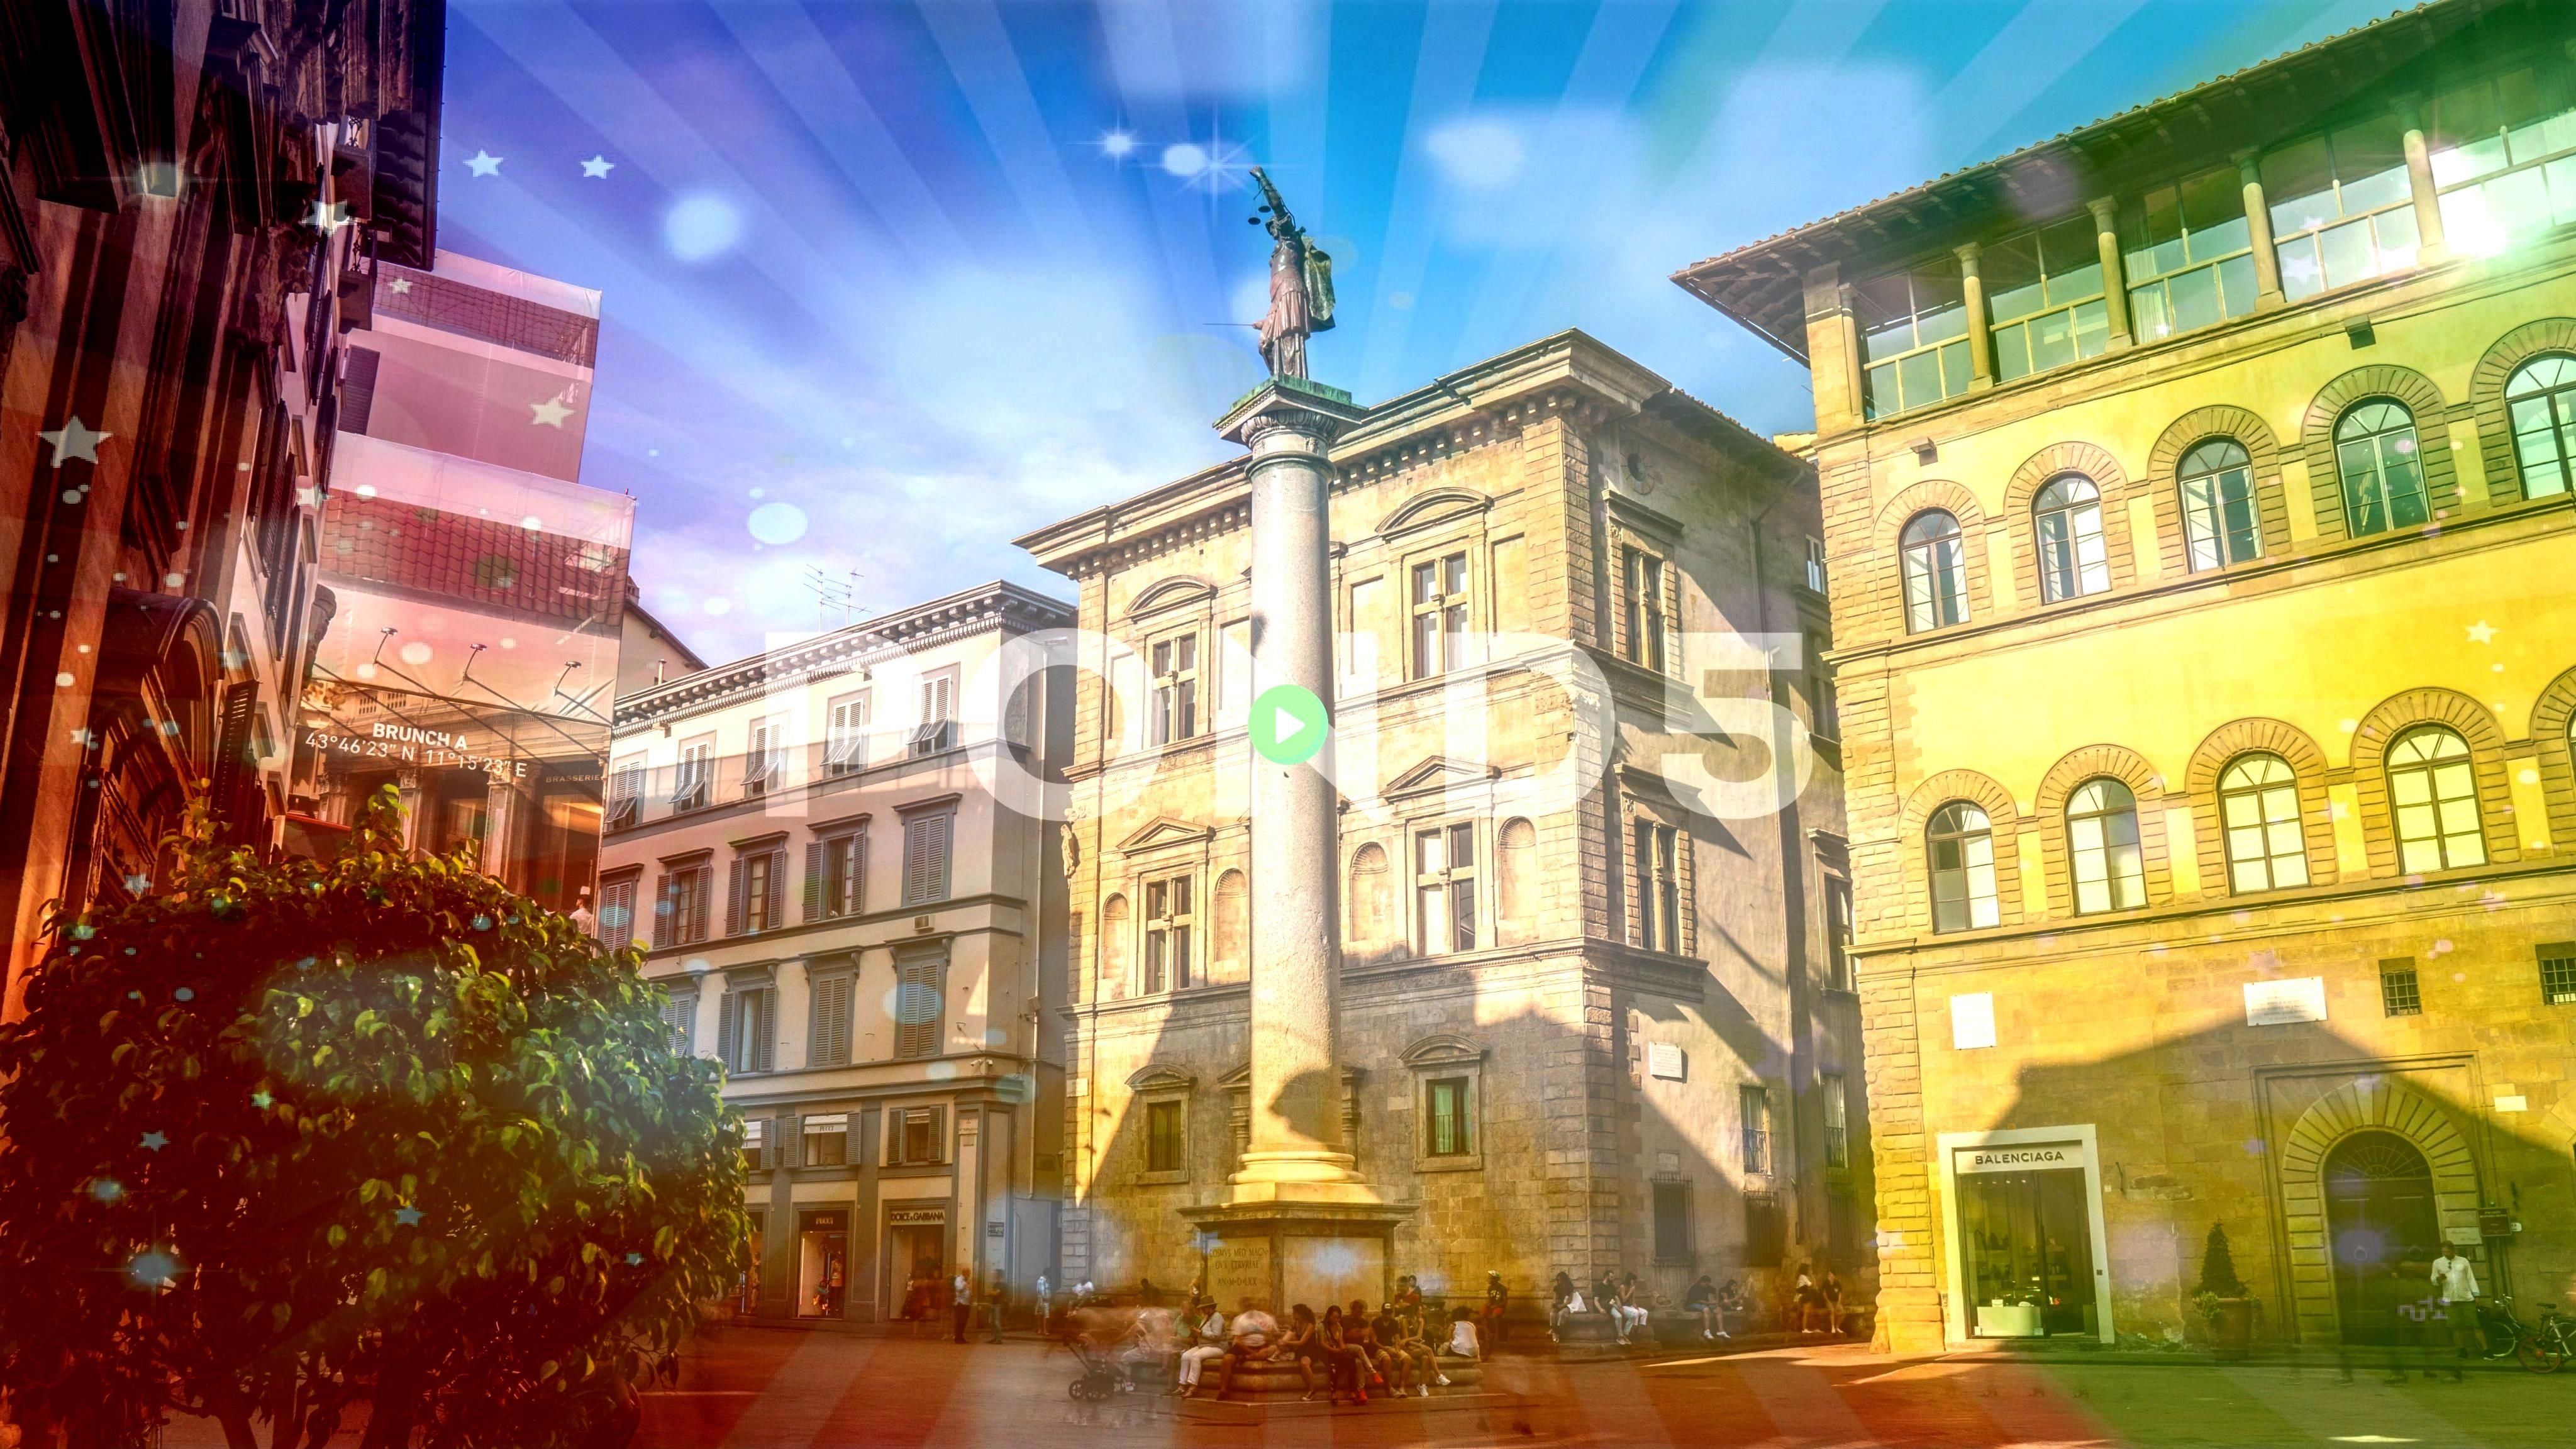 Florence People by the Column of Justice in Piazza Santa Trinita Stock Footage ColumnJusticePeopleItalyItaly Florence People by the Column of Justice in Piazza Santa Trin...